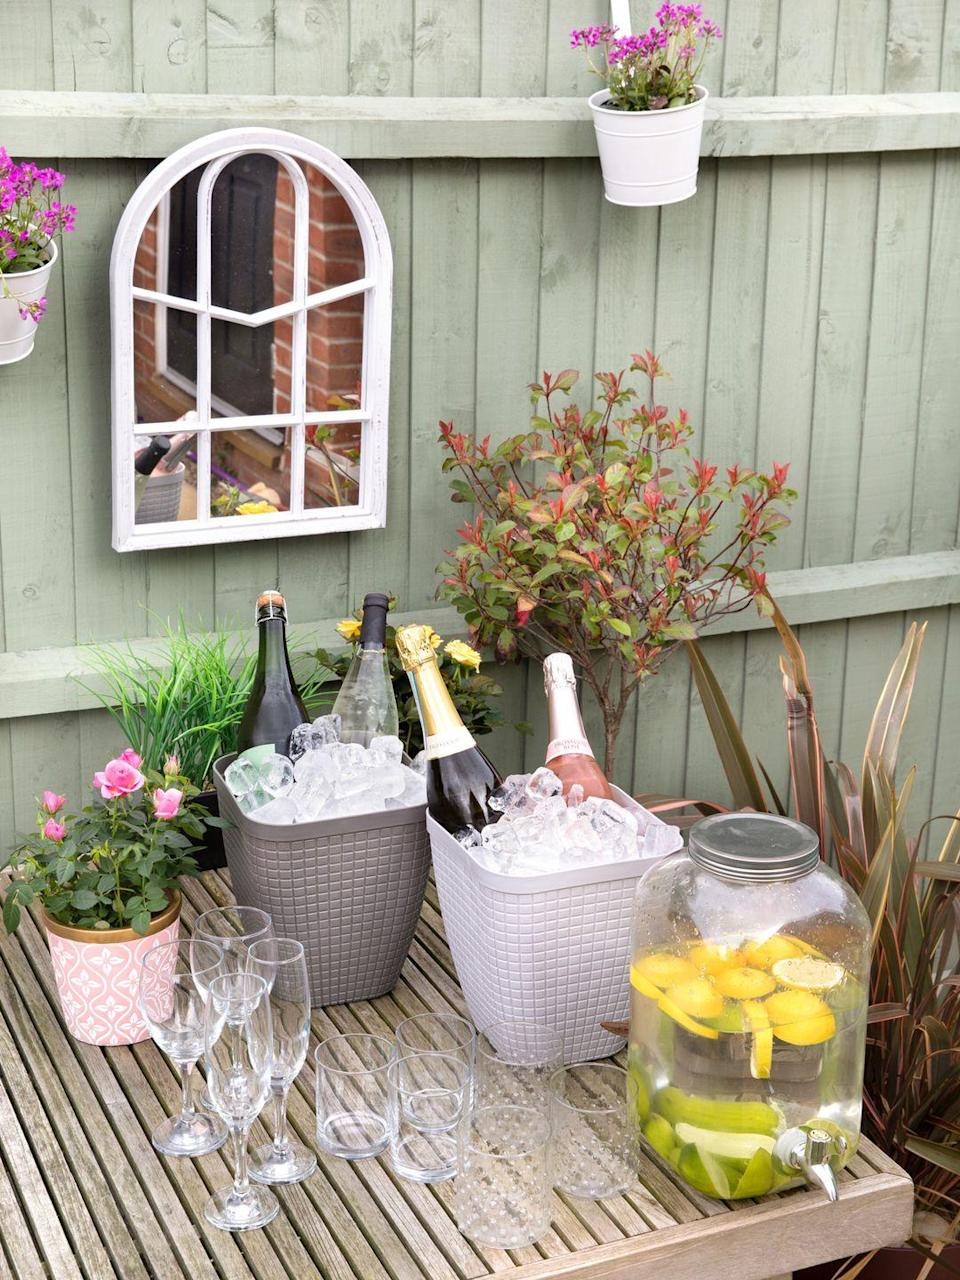 """<p>Pour a glass of bubbly and cheers to better days coming. Whether you're planning a safe group of six gathering or want to stock up on essentials, Poundland's collection includes a wine holder for £1 and a Portable Kettle BBQ for £12. </p><p><a class=""""link rapid-noclick-resp"""" href=""""https://www.poundland.co.uk/store-finder/"""" rel=""""nofollow noopener"""" target=""""_blank"""" data-ylk=""""slk:FIND NEAREST STORE"""">FIND NEAREST STORE</a></p>"""